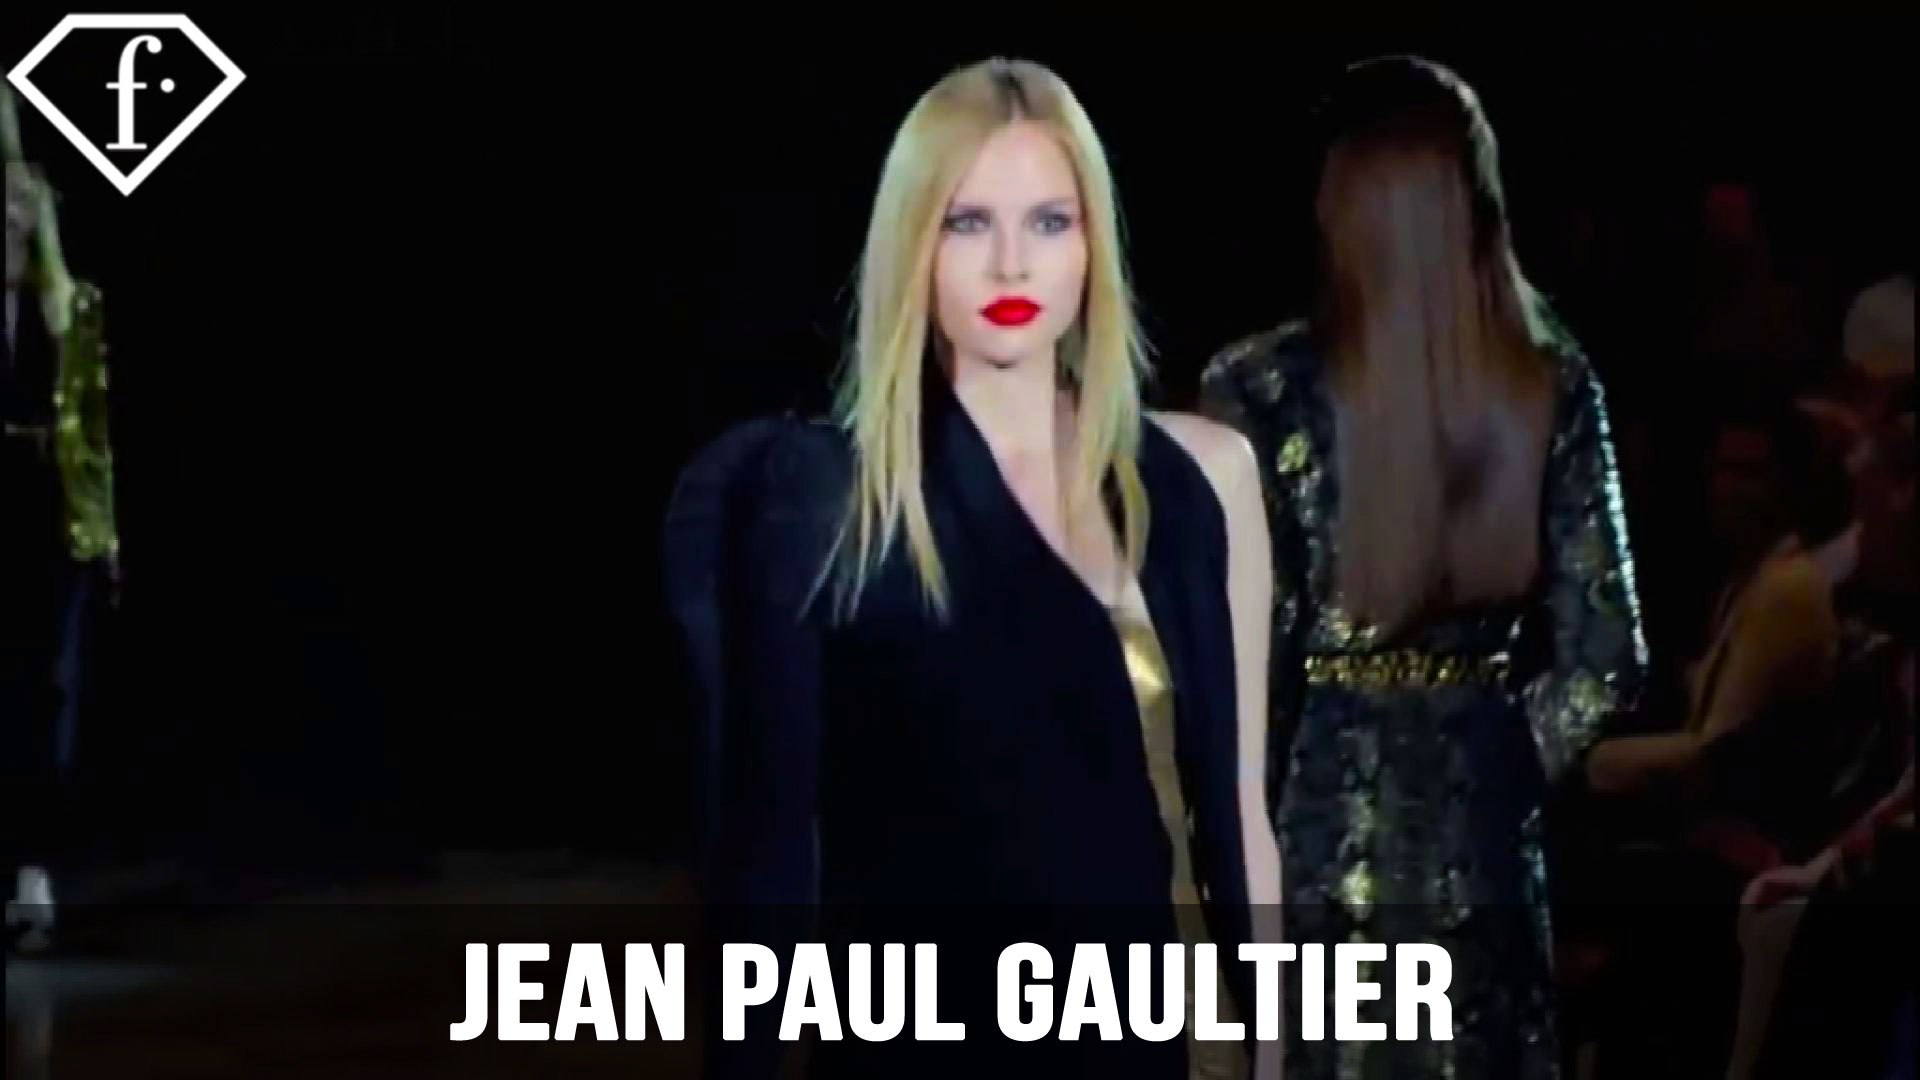 GAULTIER PARIS Haute Couture new collection by Jean Paul Gaultier | FTV.com